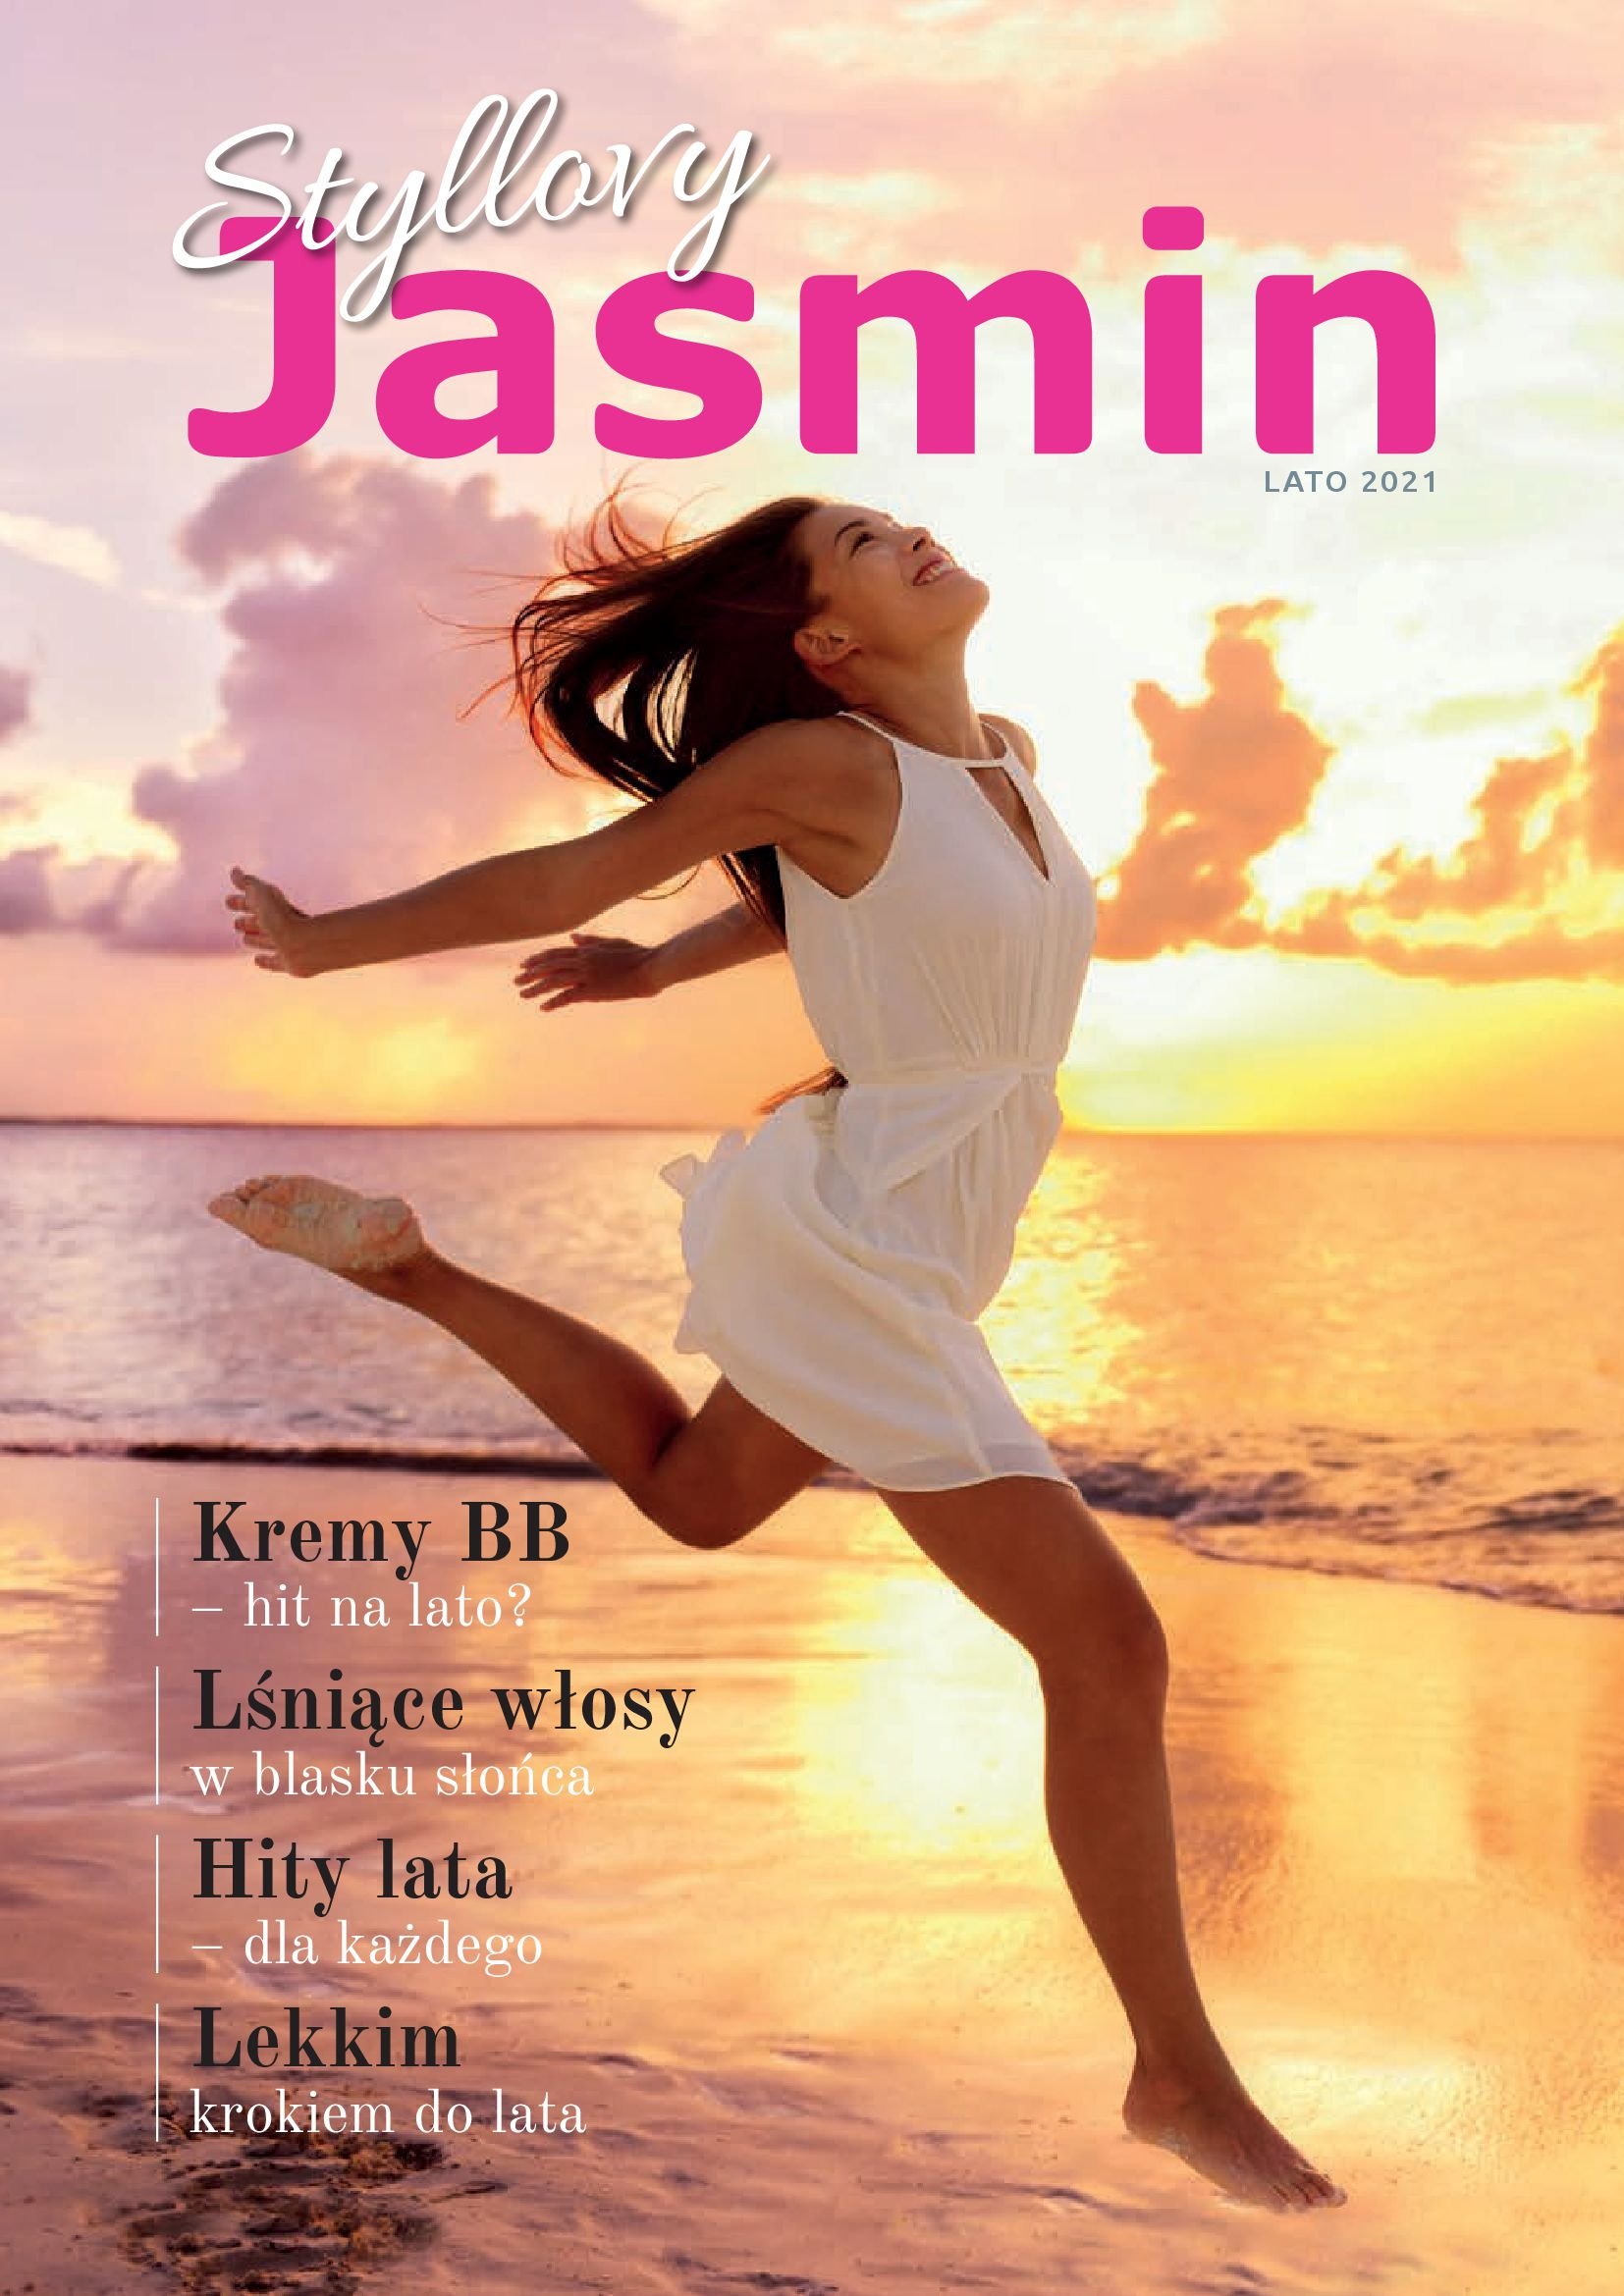 Gazetka Drogerie Jasmin: Gazetka Drogerie Jasmin 2021-08-24 page-1